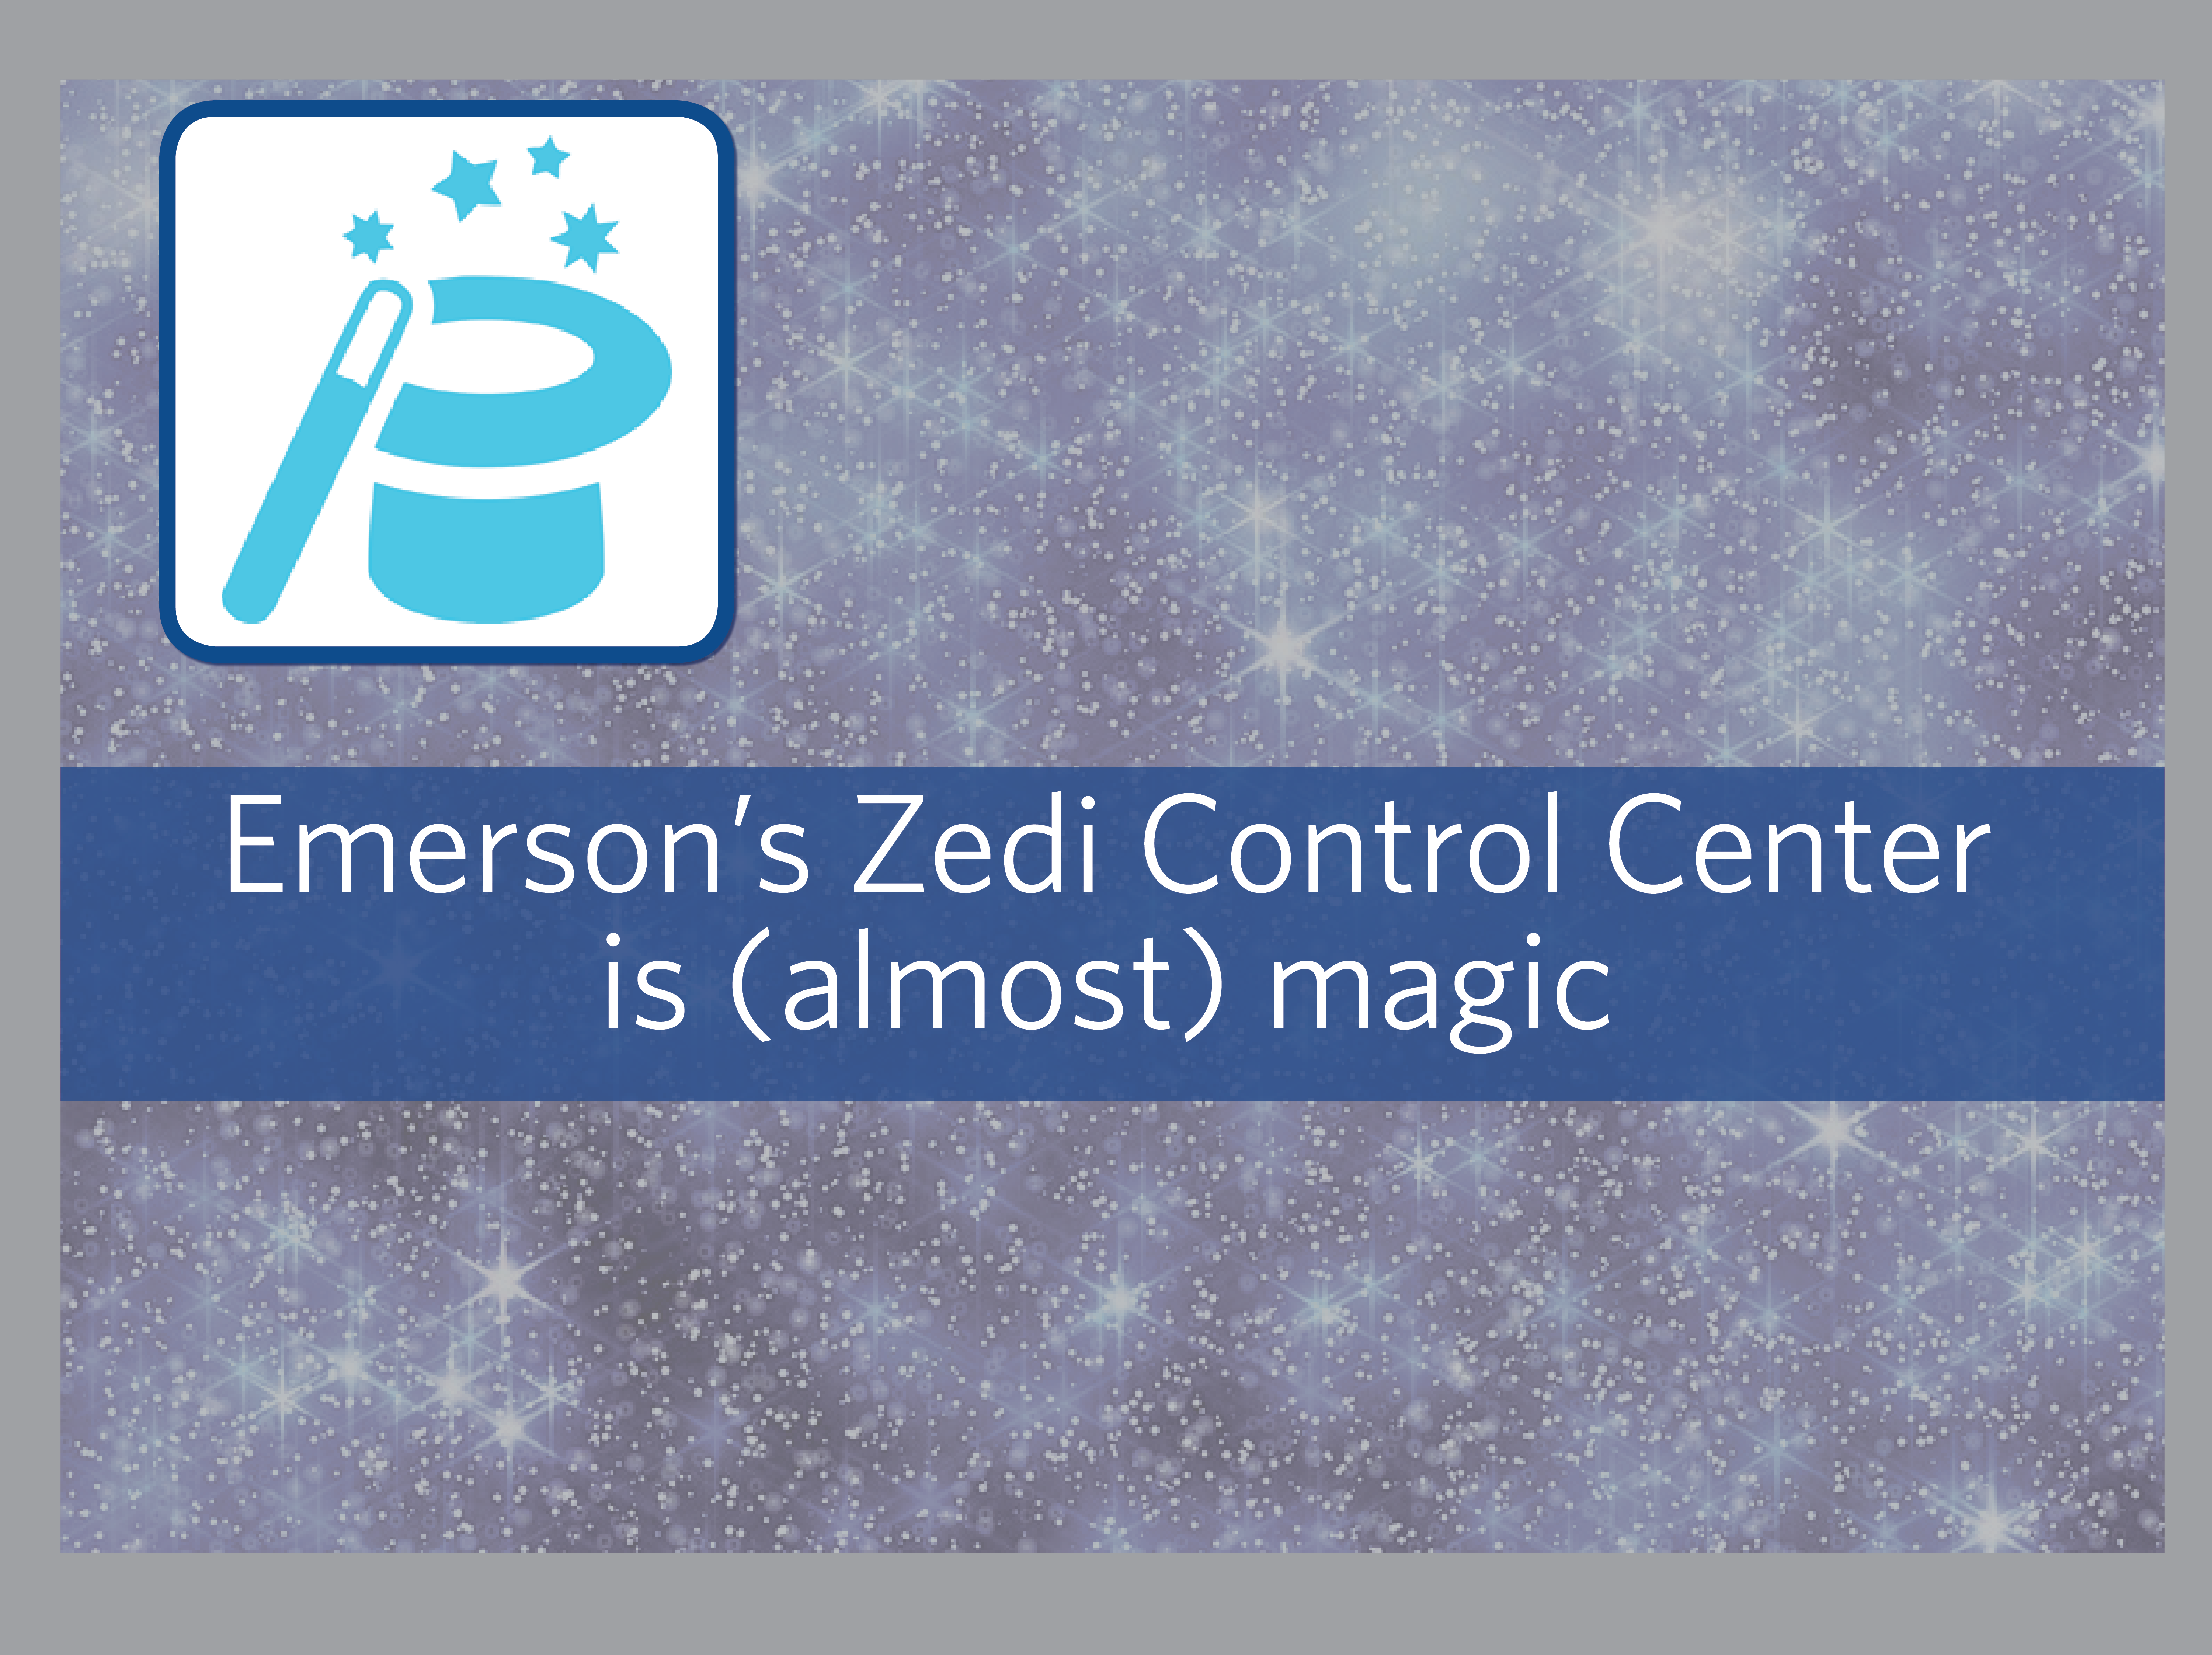 Zedi Control Center is almost magic when it comes to reducing operations costs and safety